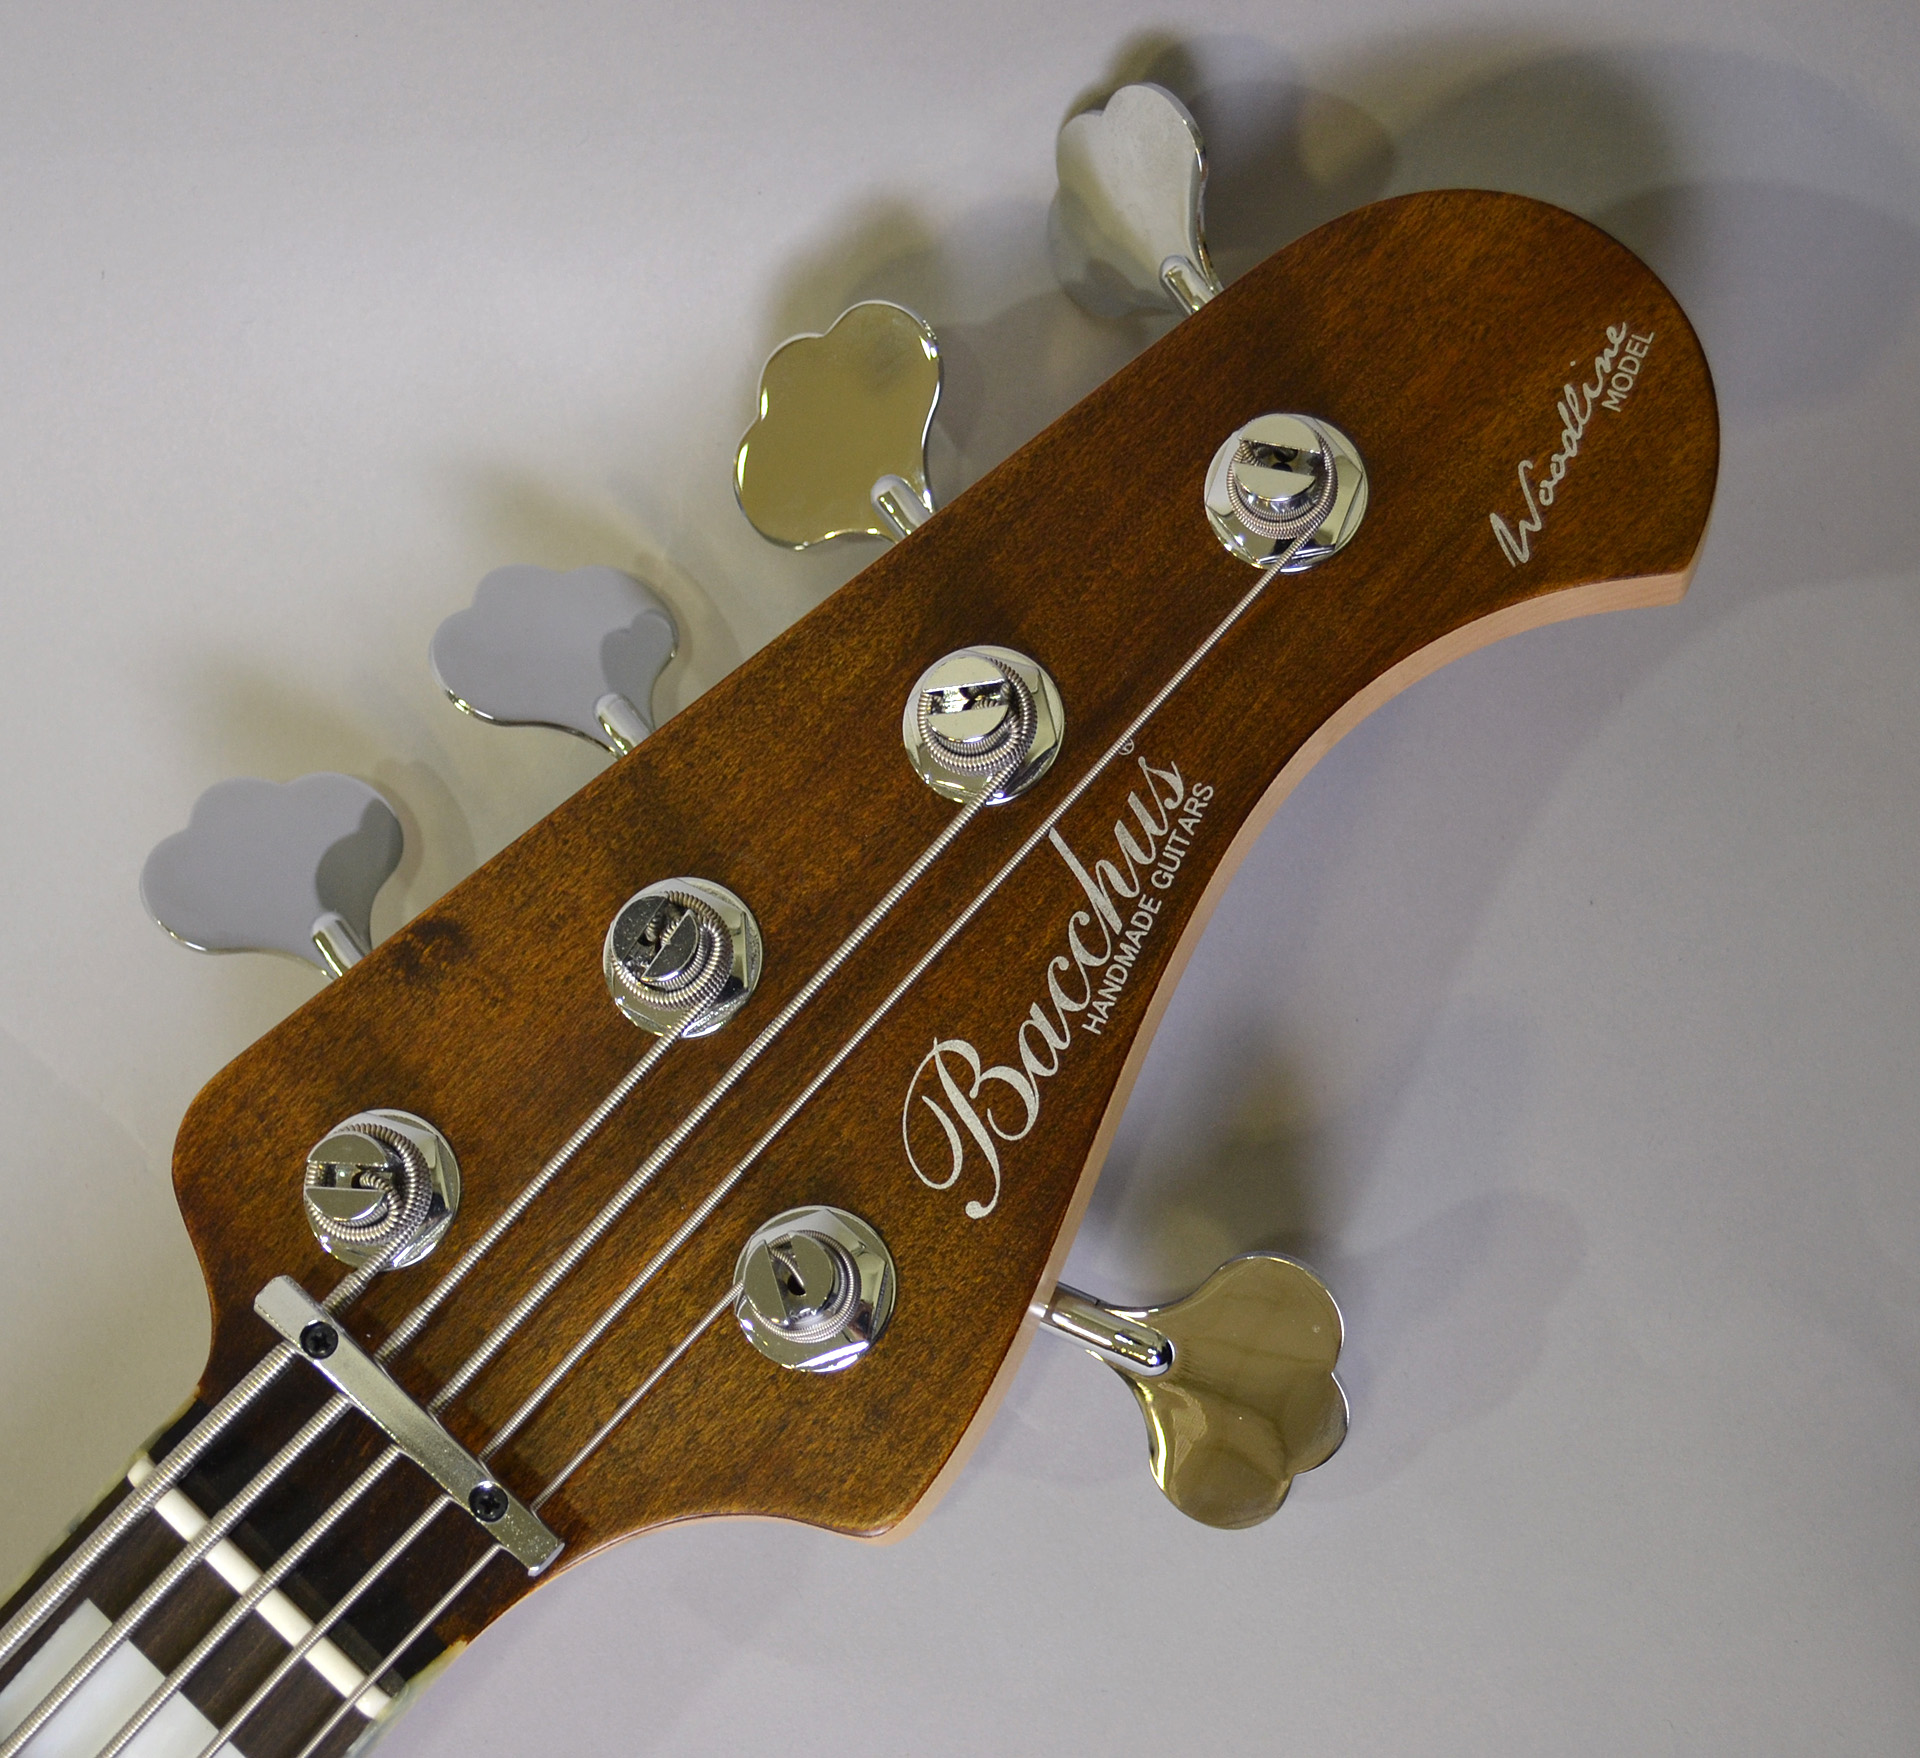 WOODLINE DX5 AC/ E BROWN OIL SN/138316のヘッド画像